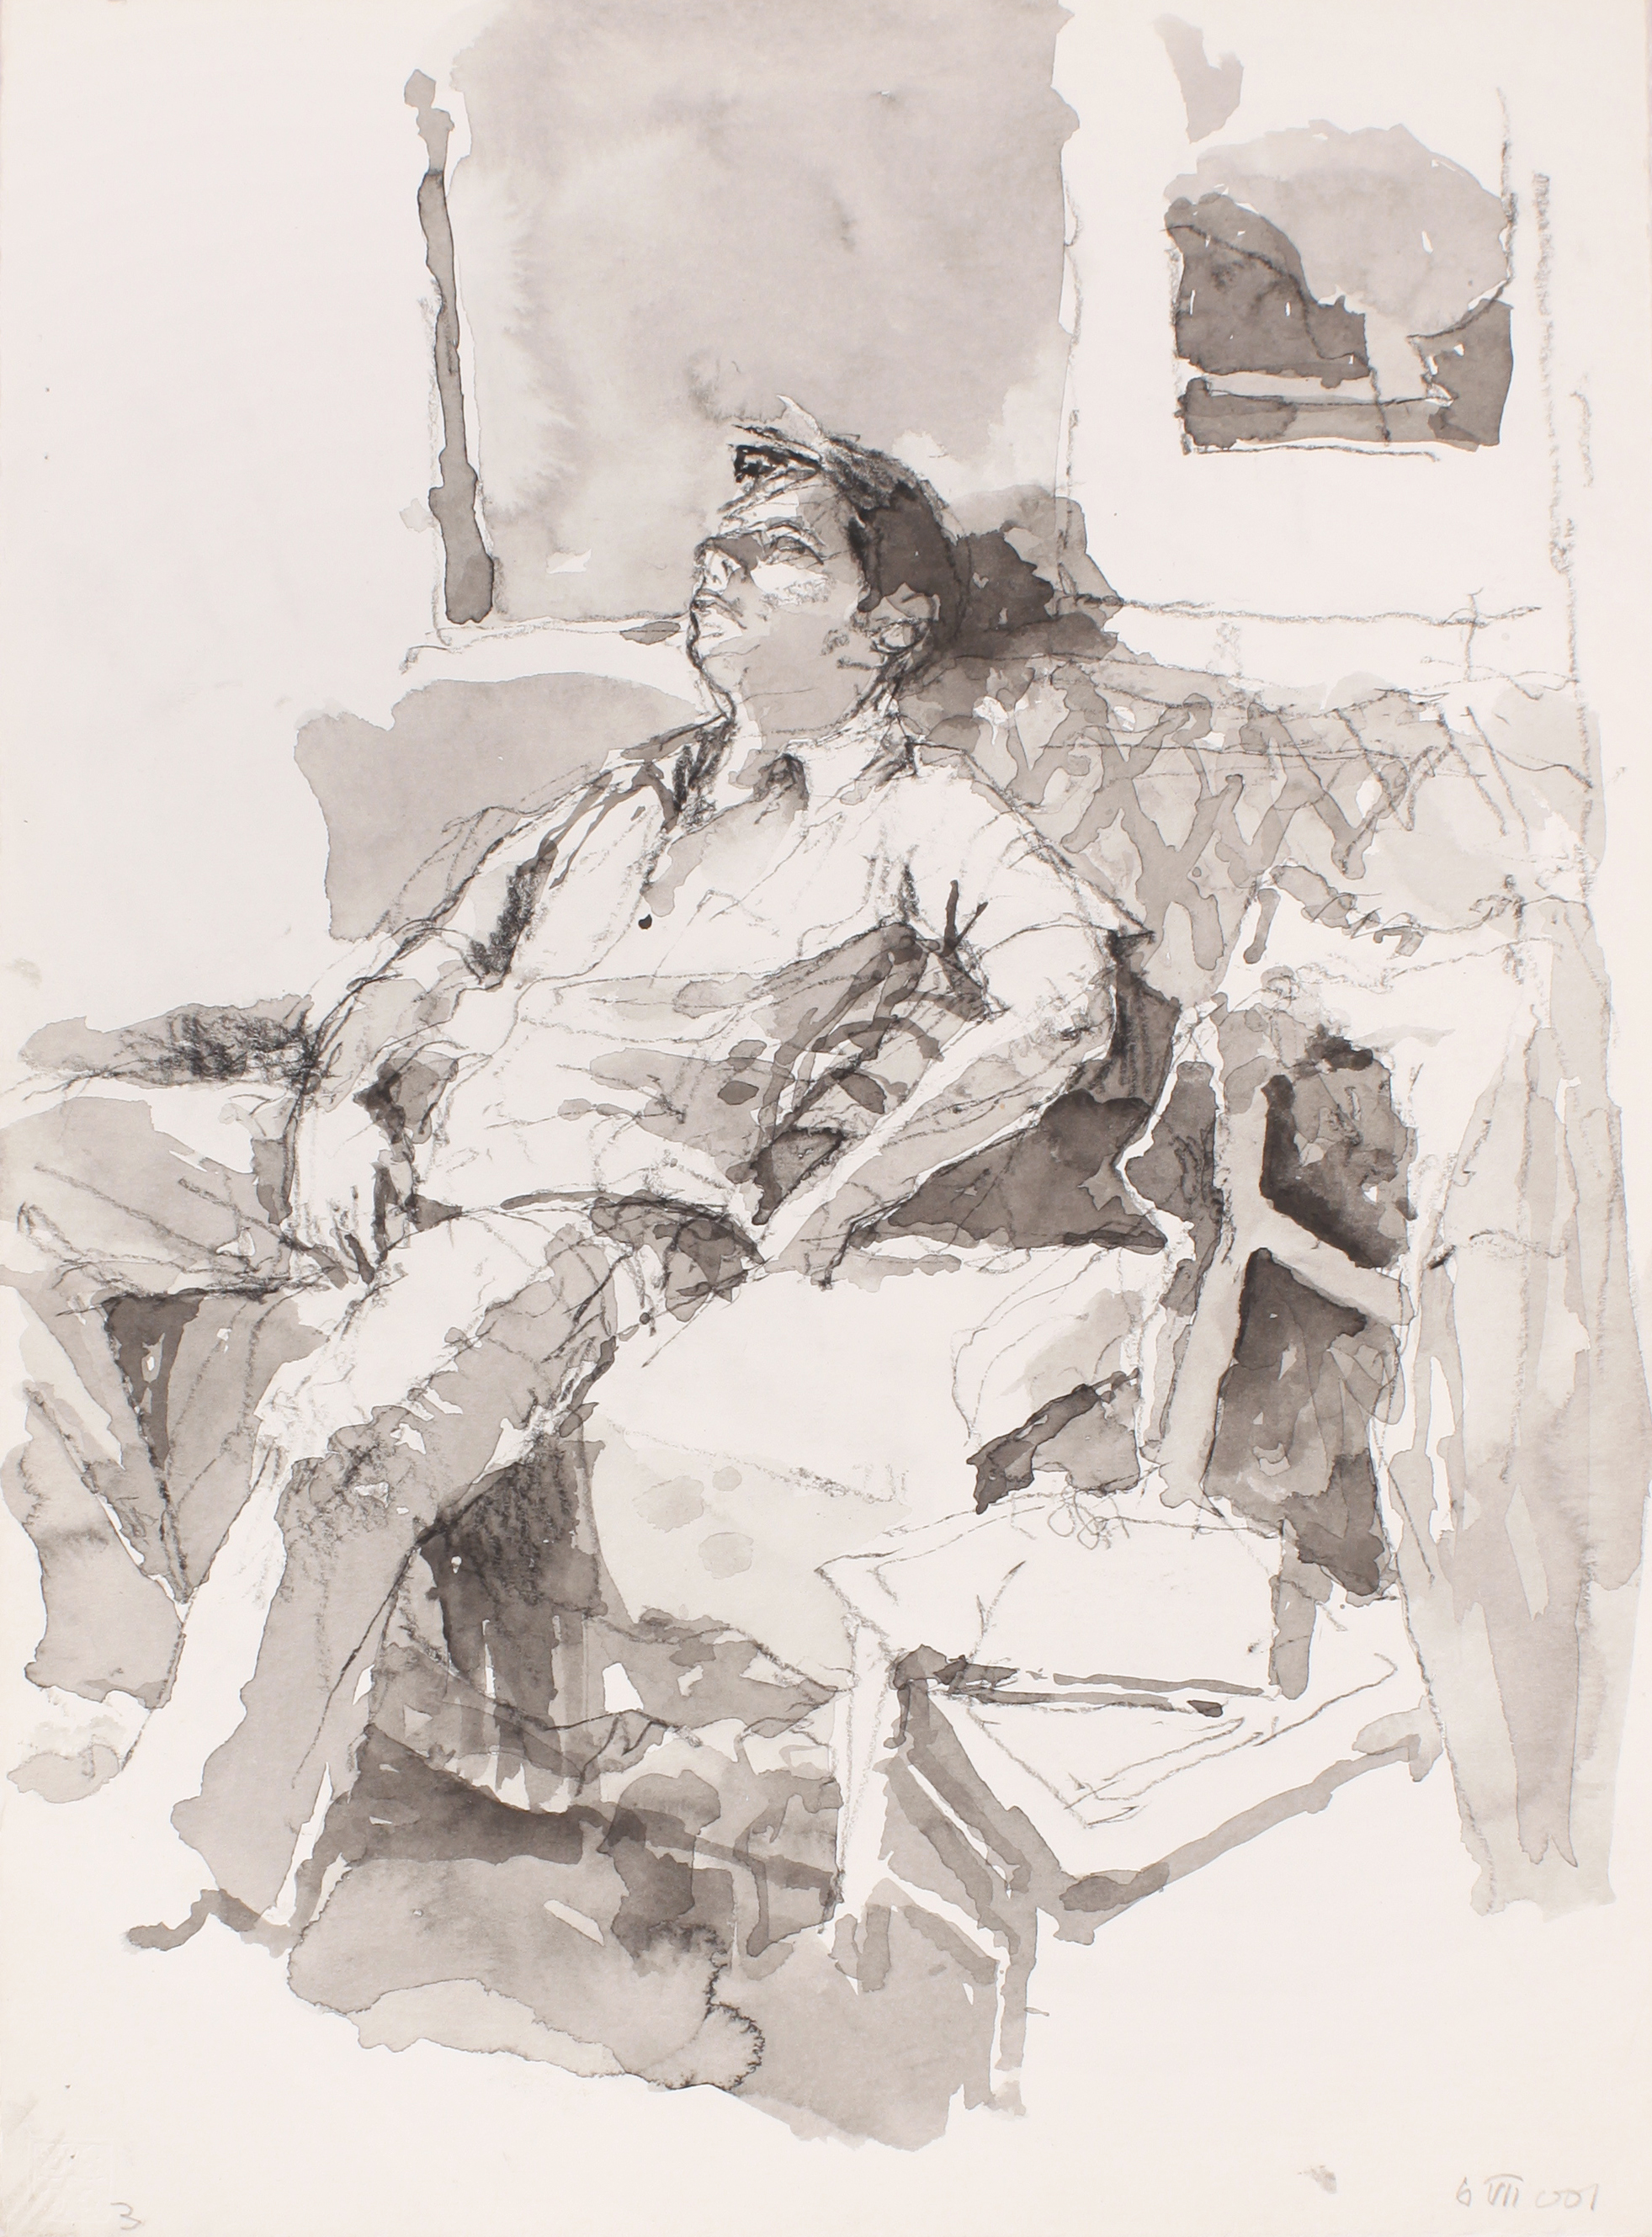 Anthony on Sofa Alongside Chair with Jacket Figure in Studio